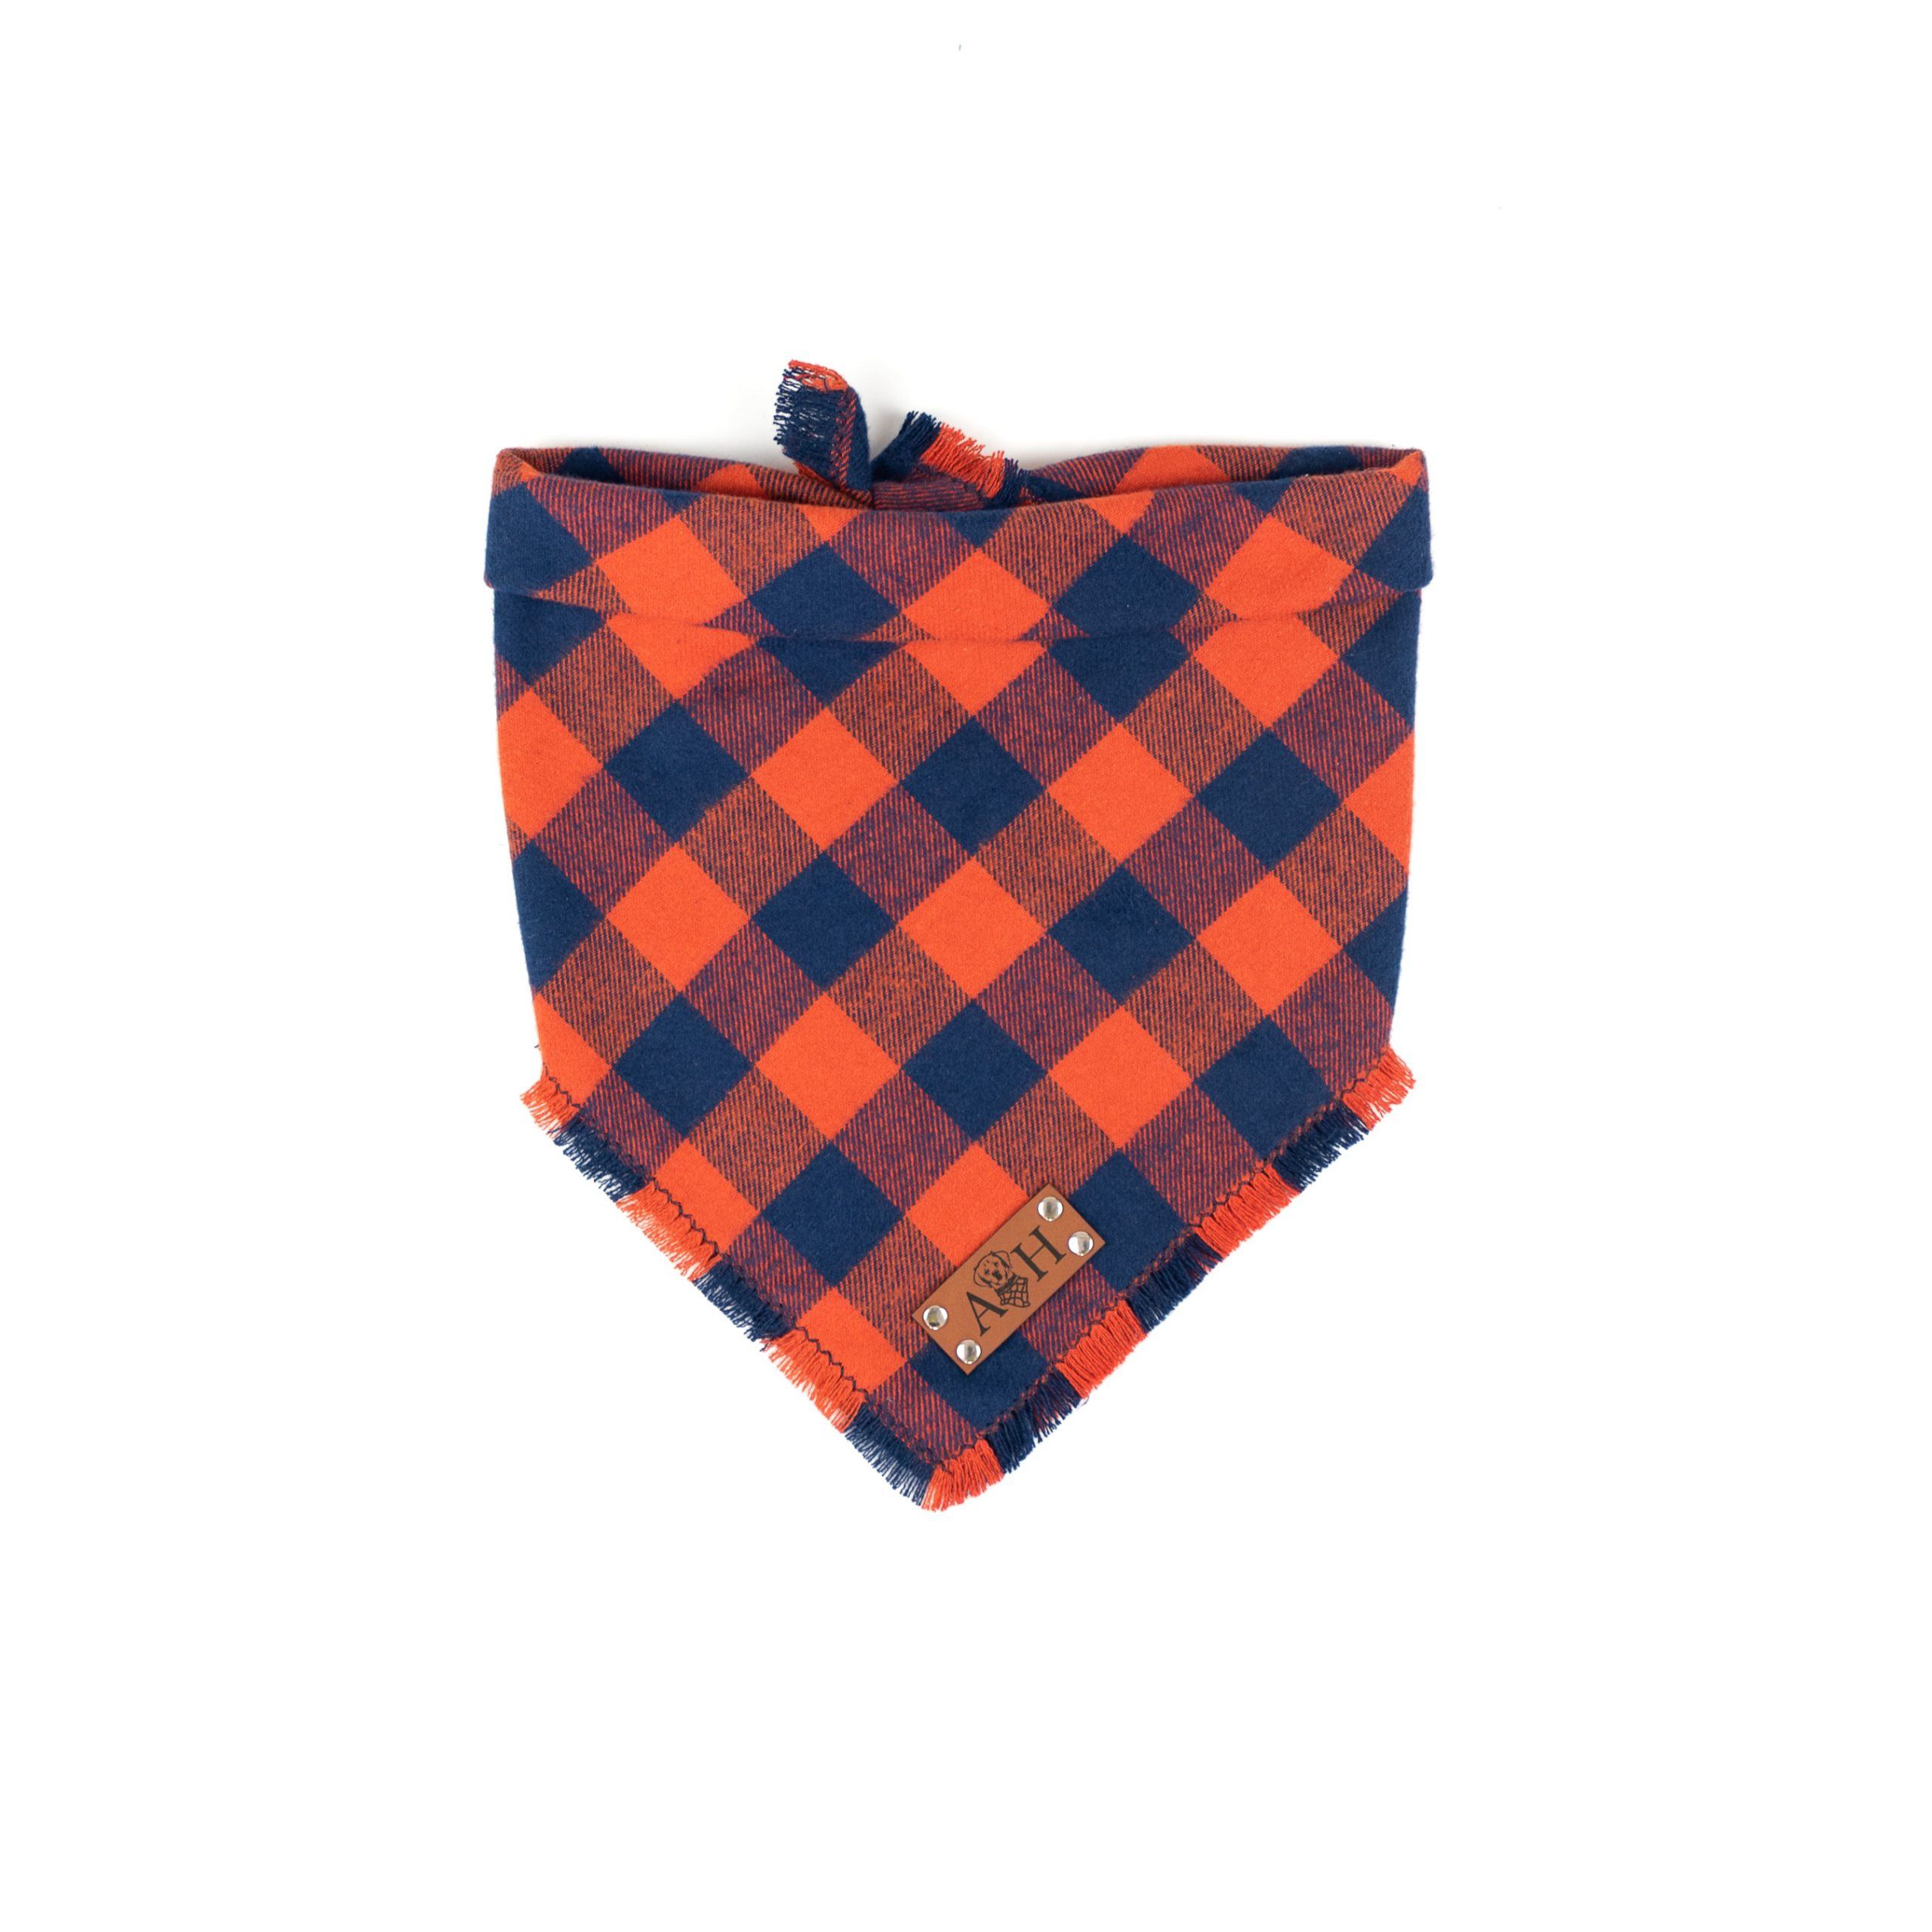 blue and orange frayed dog bandana